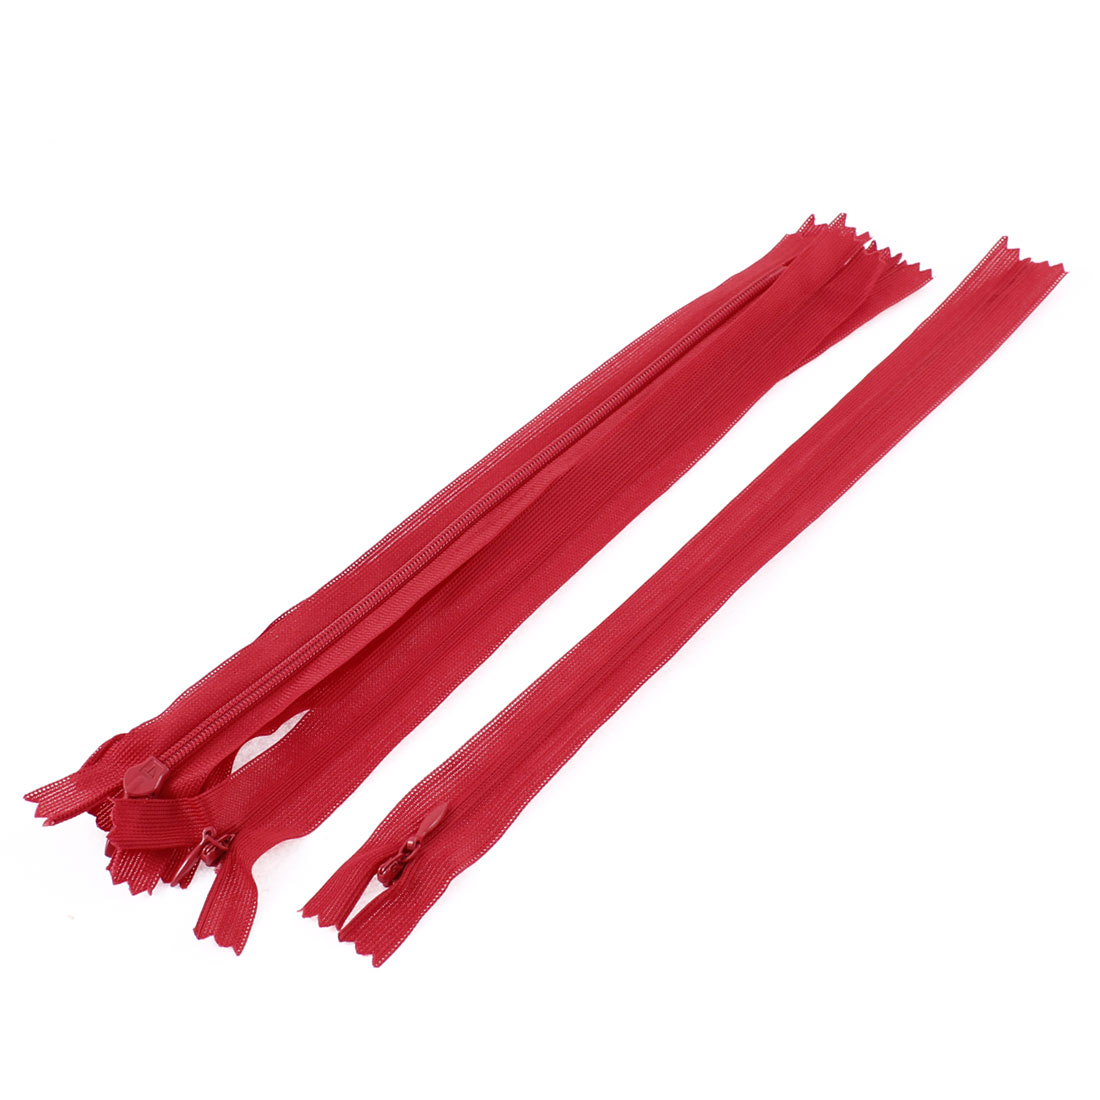 Dress Pants Closed End Nylon DIY Zippers Tailor Sewing Craft Tool Red 25cm 5 Pcs